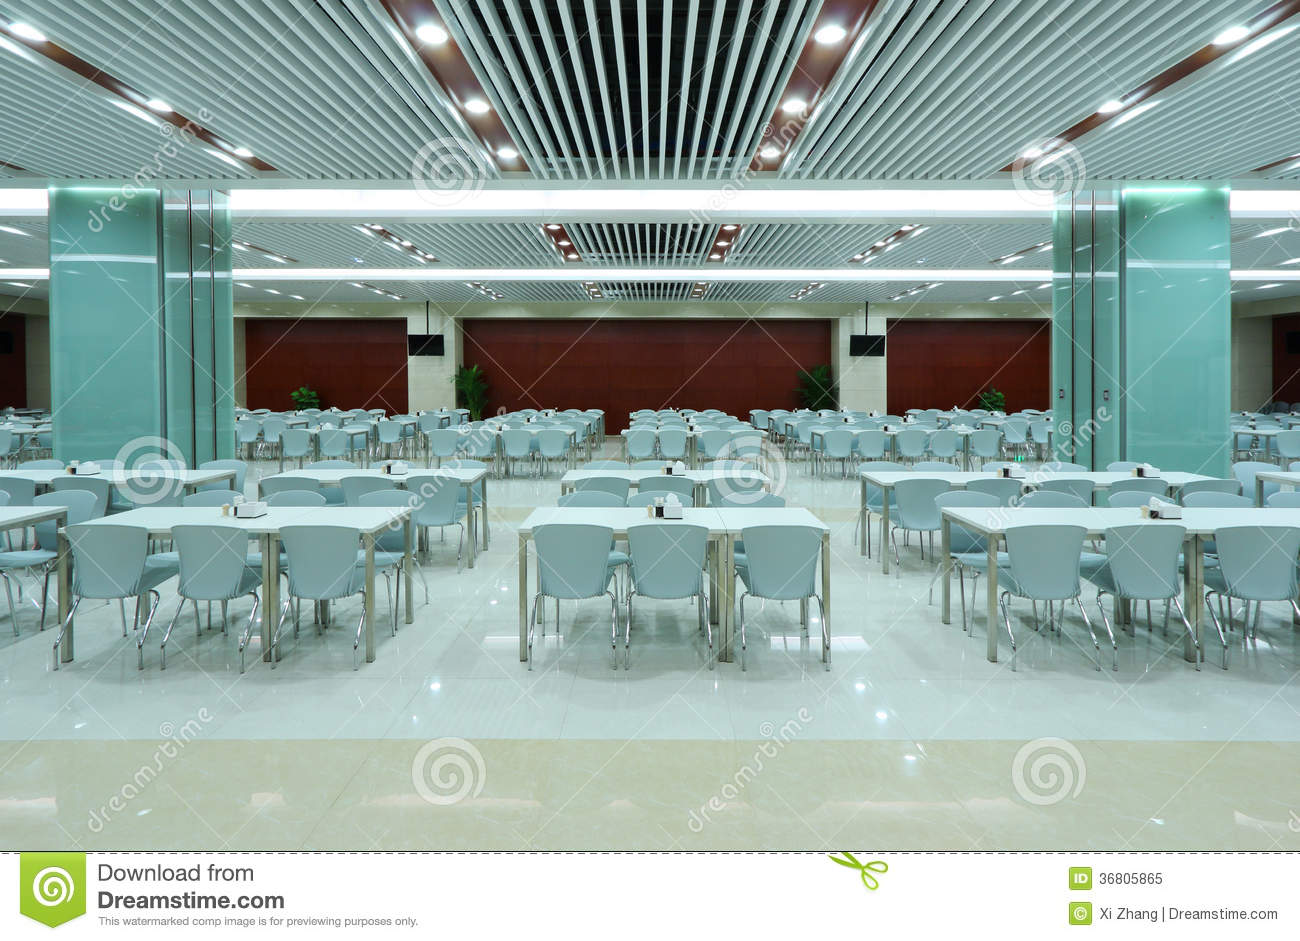 Dining hall royalty free stock photo image 36805865 for Dining hall interior